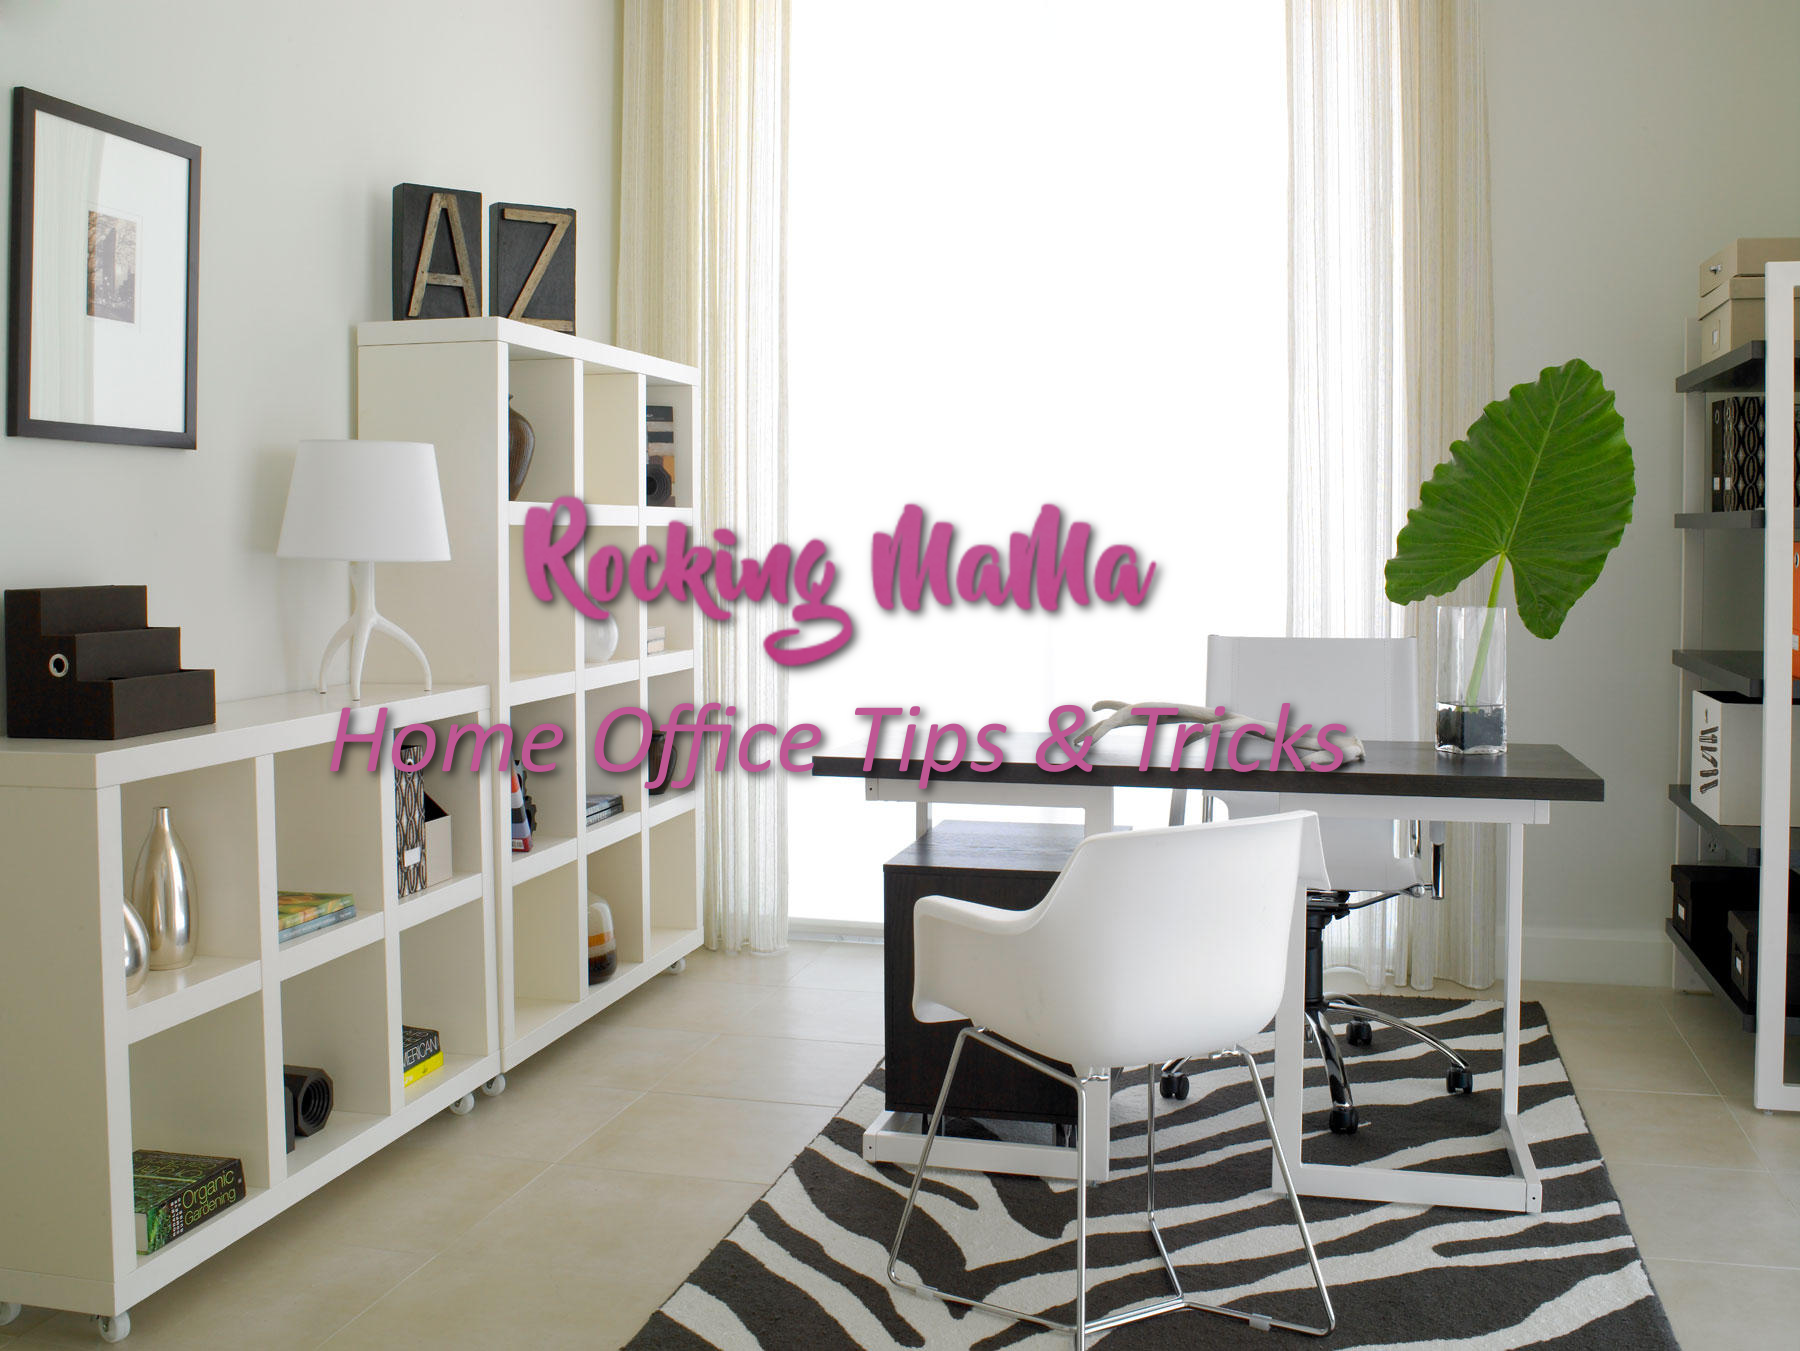 Making a home office Office Space Making Your Home Office Part Of Family Activities Rocking Mamas Blog Making Your Home Office Part Of Family Activities Rocking Mamas Blog